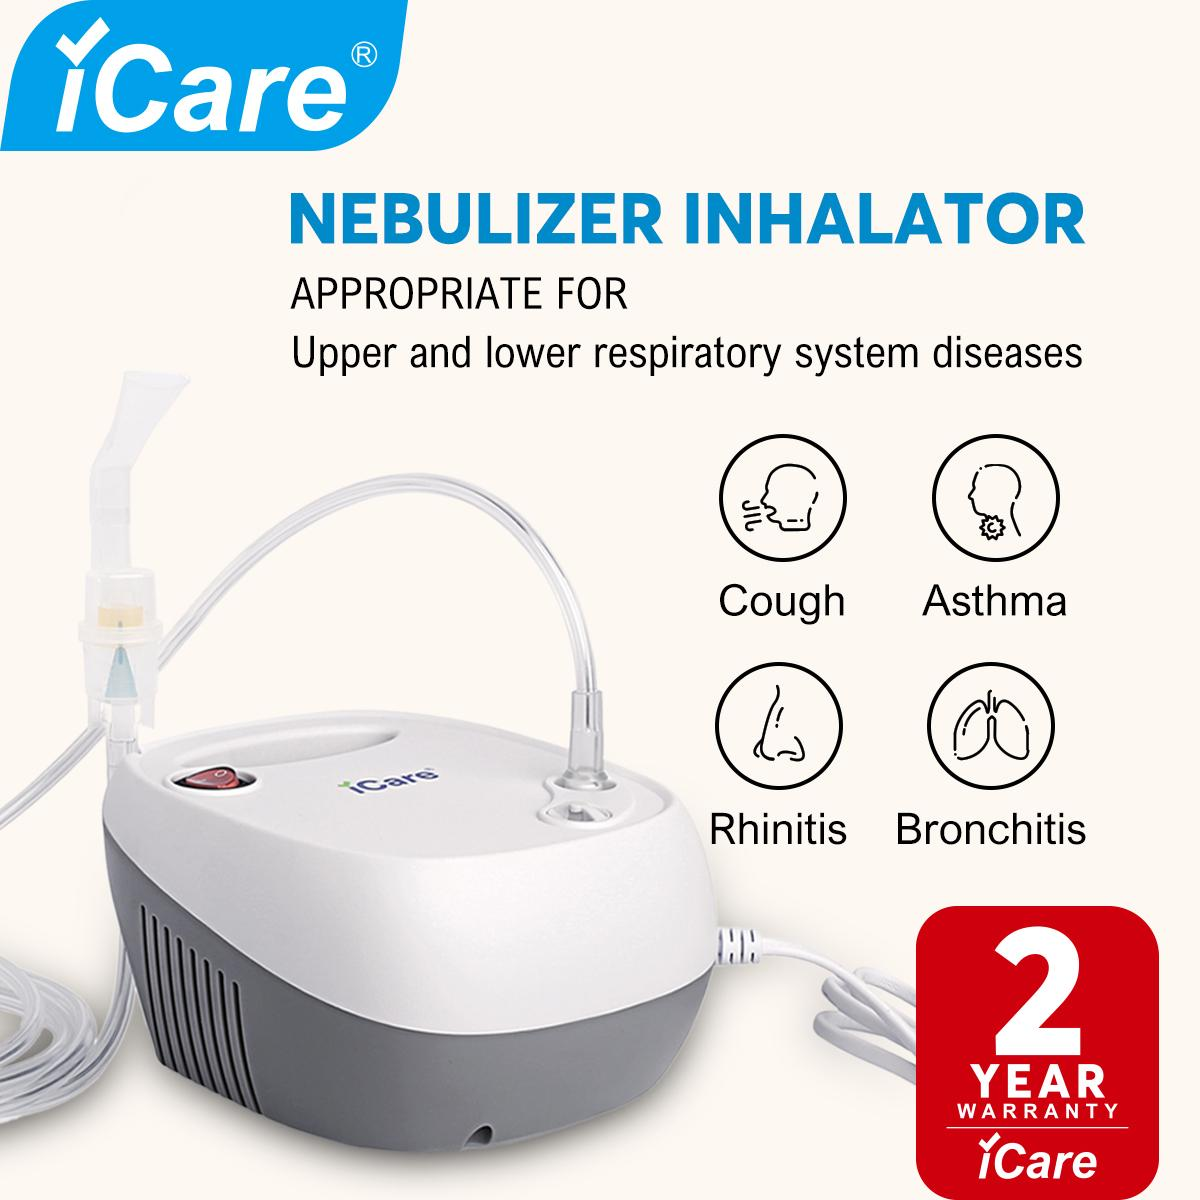 Icare®n38 Ultra Compressor Nebulizer Inhalator With Adult And Children Mask Kits By Icare Rehab Philippines.